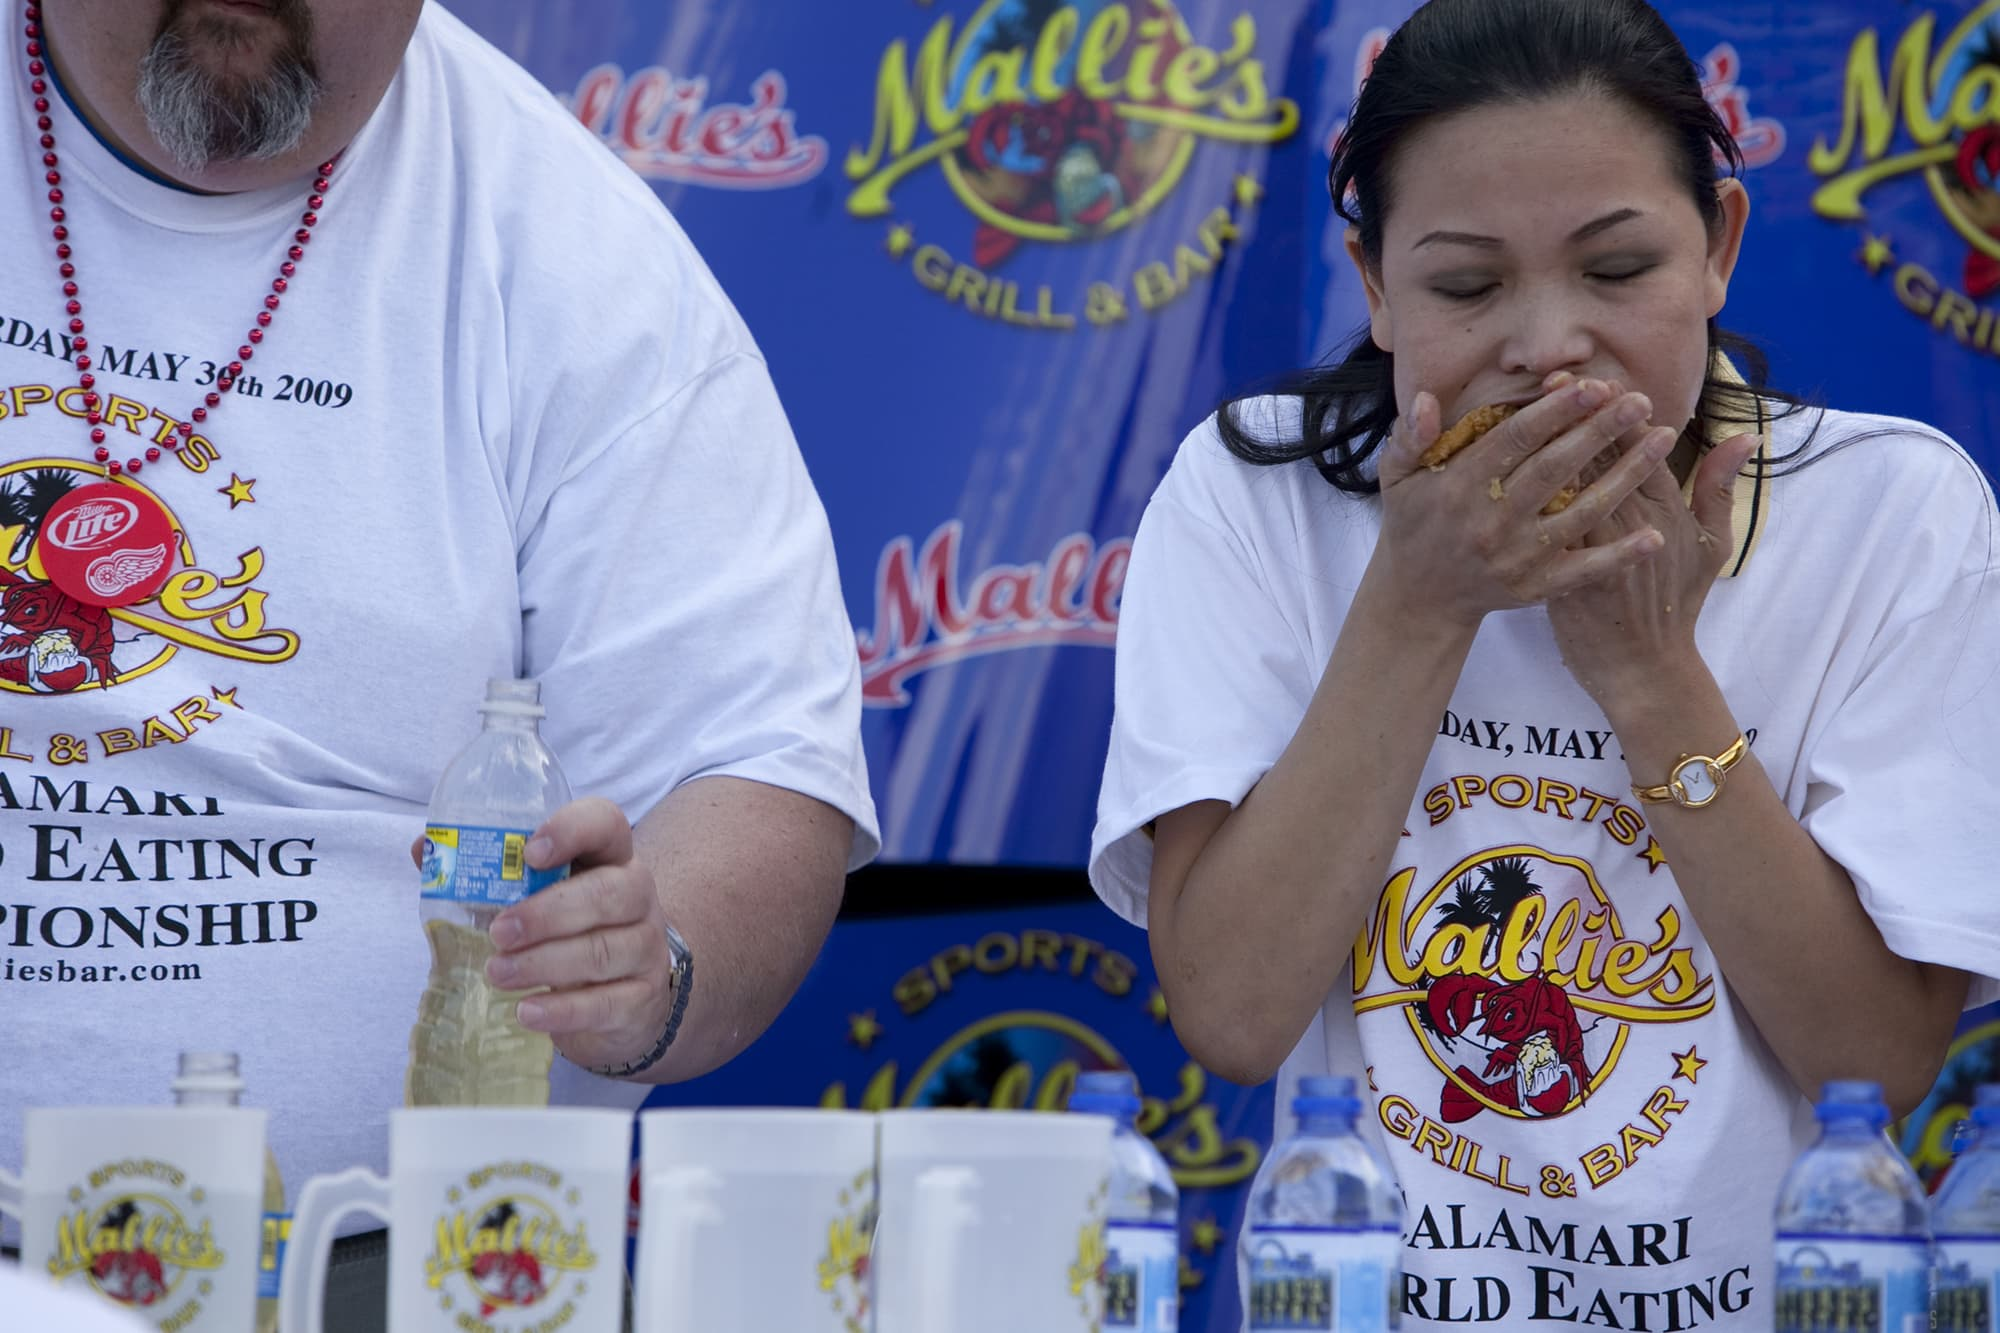 Calamari eating contest in Southgate, Michigan